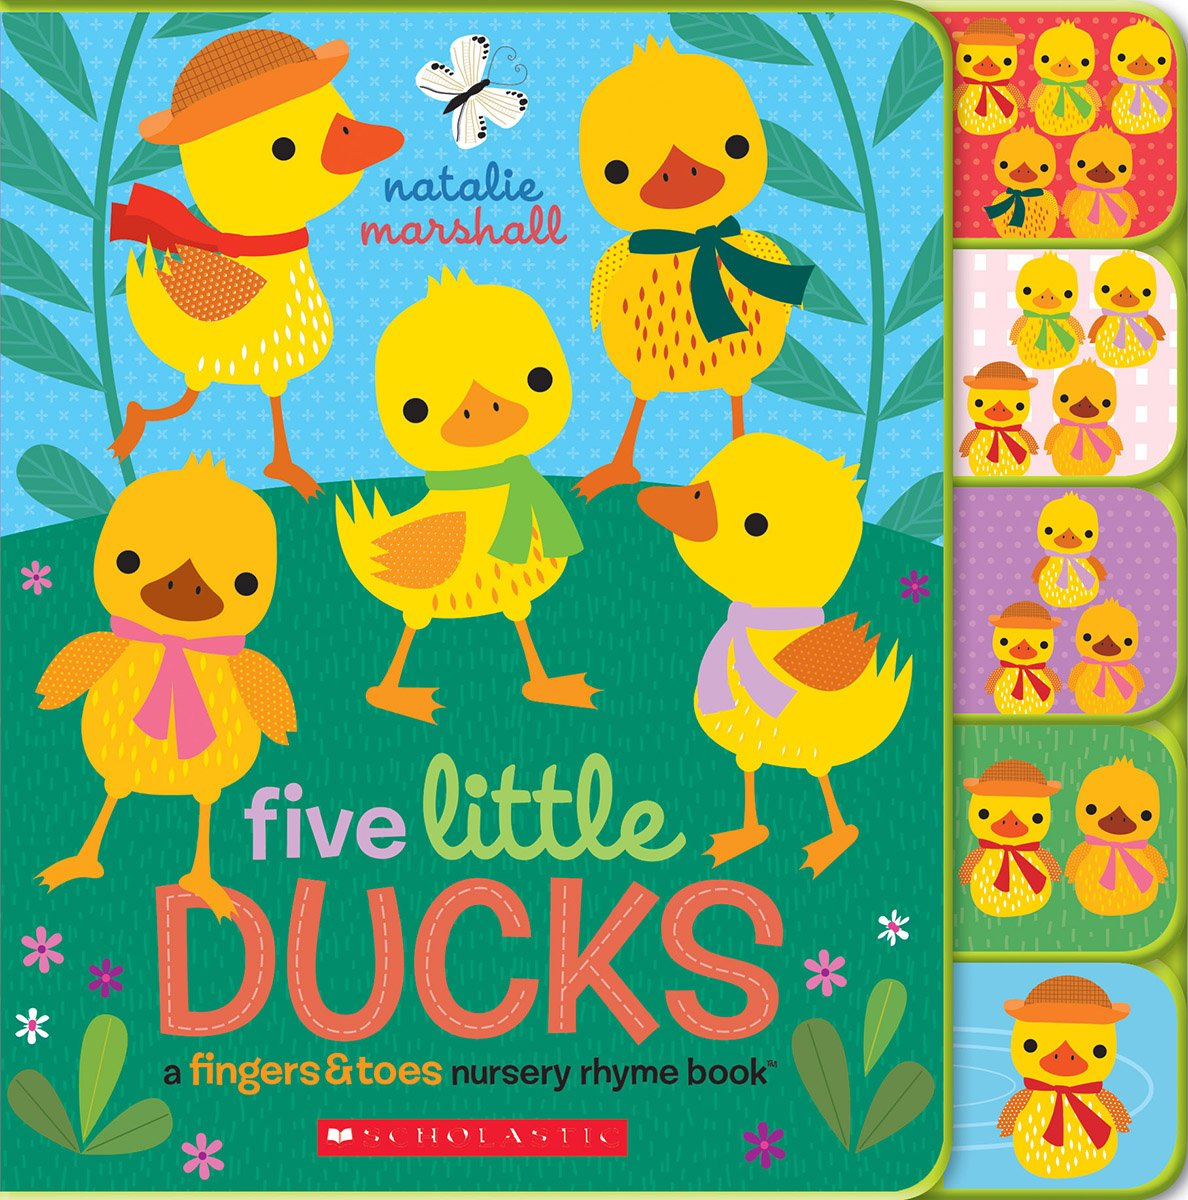 Five Little Ducks  A Fingers And Toes Nursery Rhyme Book  Fingers And Toes Tabbed Board Book  Fingers And Toes Nursery Rhymes